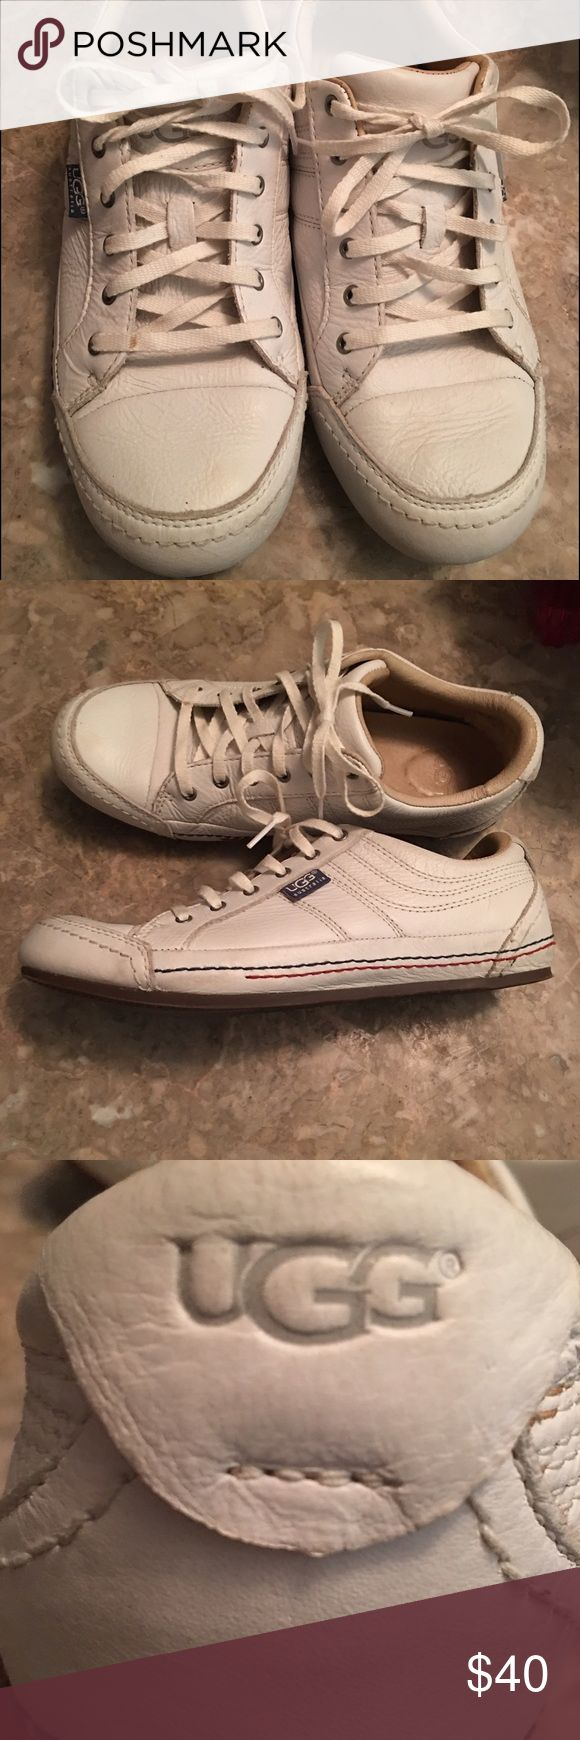 UGG shoes White UGG Sneaker. Worn but very wearable. Ok to make offers or ask questions. No trades UGG Shoes Sneakers